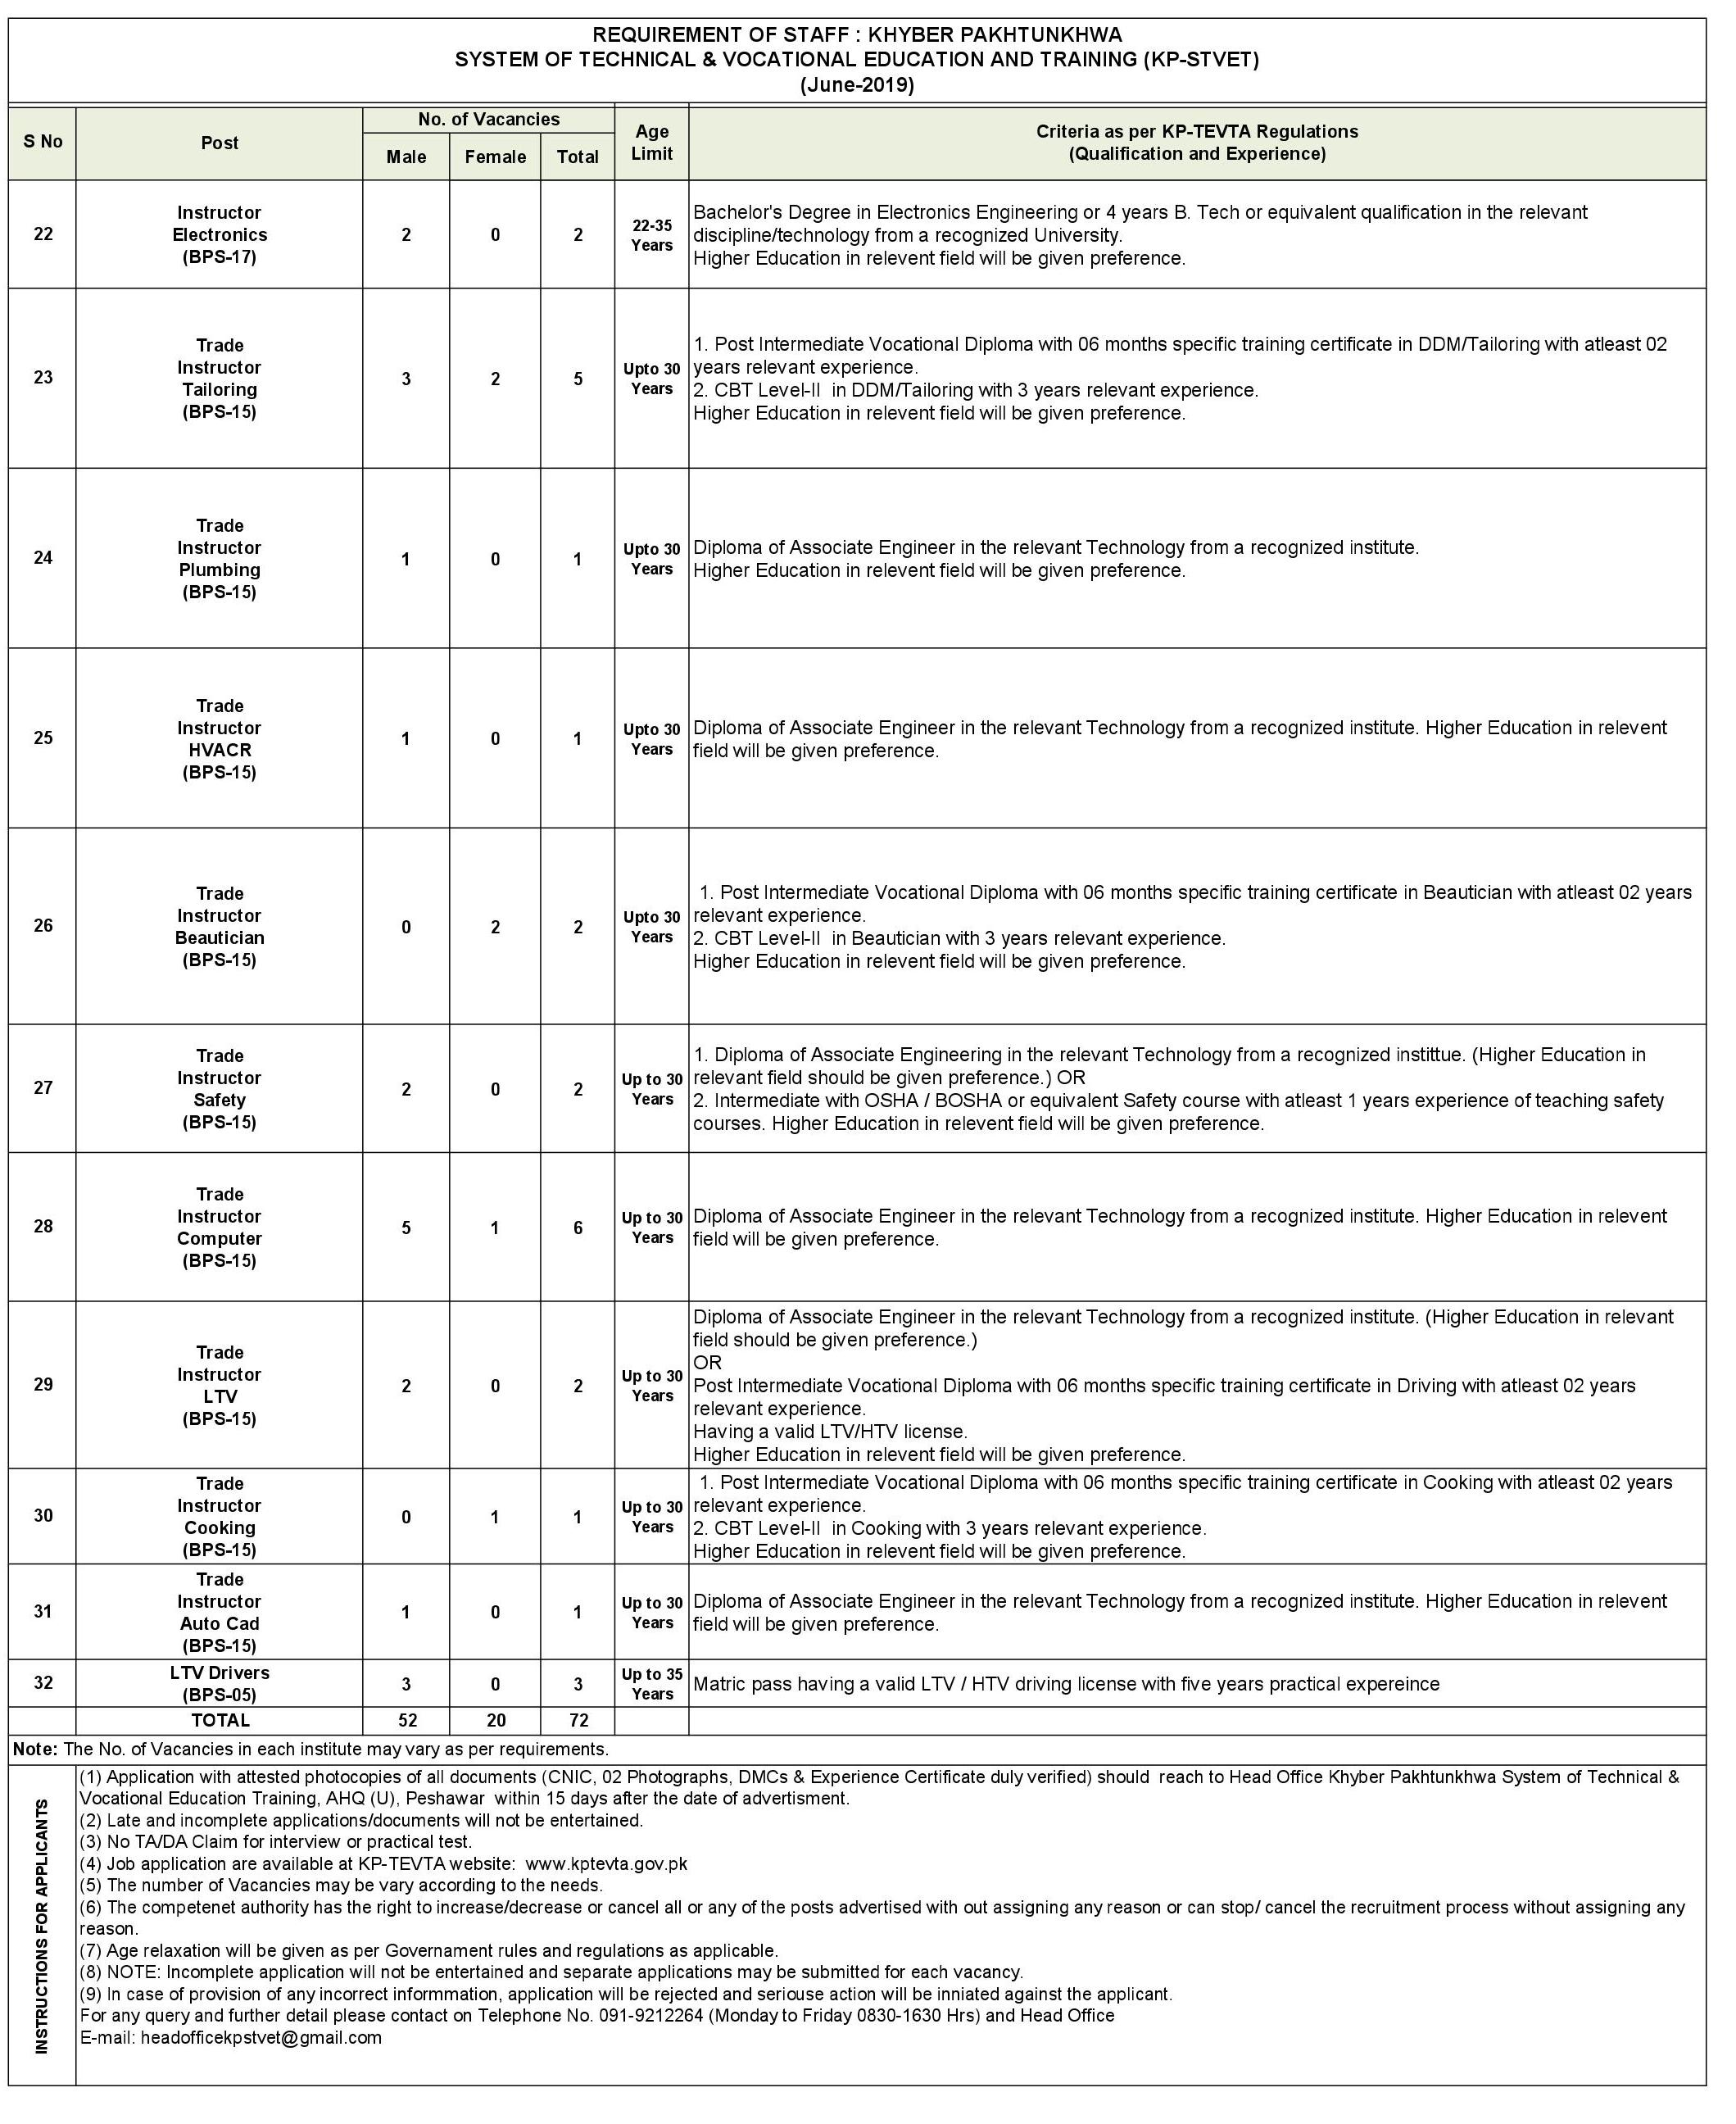 System Of Technician & Vocational Education & Training Jobs